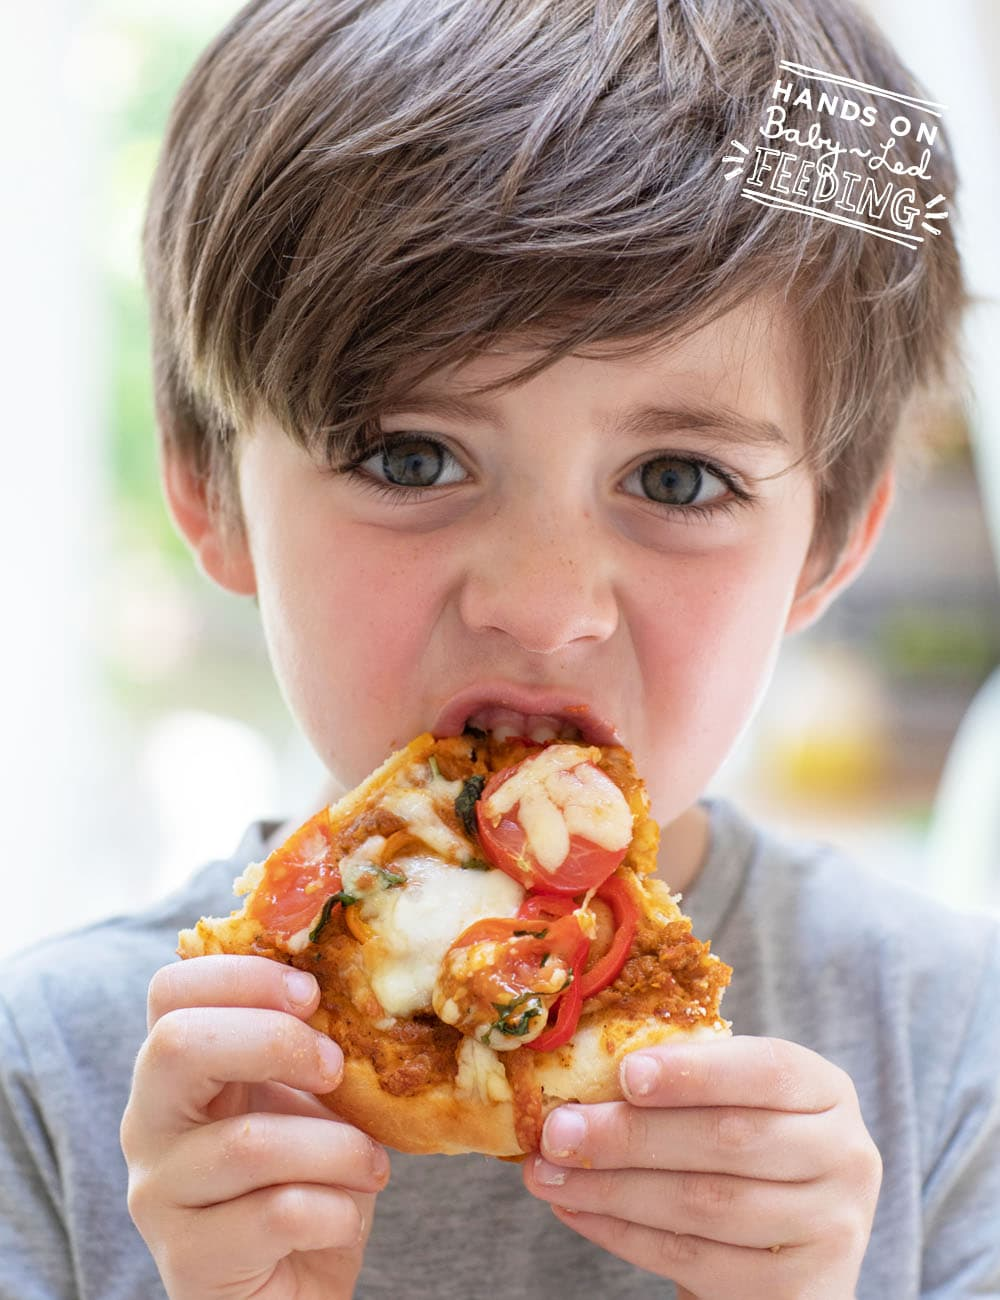 Juicy tomatoes and fresh sweet peppers give this healthy pizza a lightly sweet bite making it great for younger palates. Picky eater vegetable pizza is a family friendly nutritious recipe that only takes 10 minutes! #babyledweaning #pickyeater #toddlerfood #pizza #familyfood #refinedsugarfree